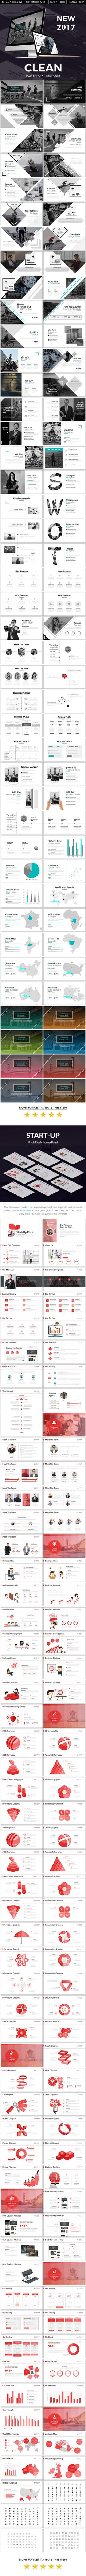 Clean 2017 Powerpoint Presentation Template Bundle